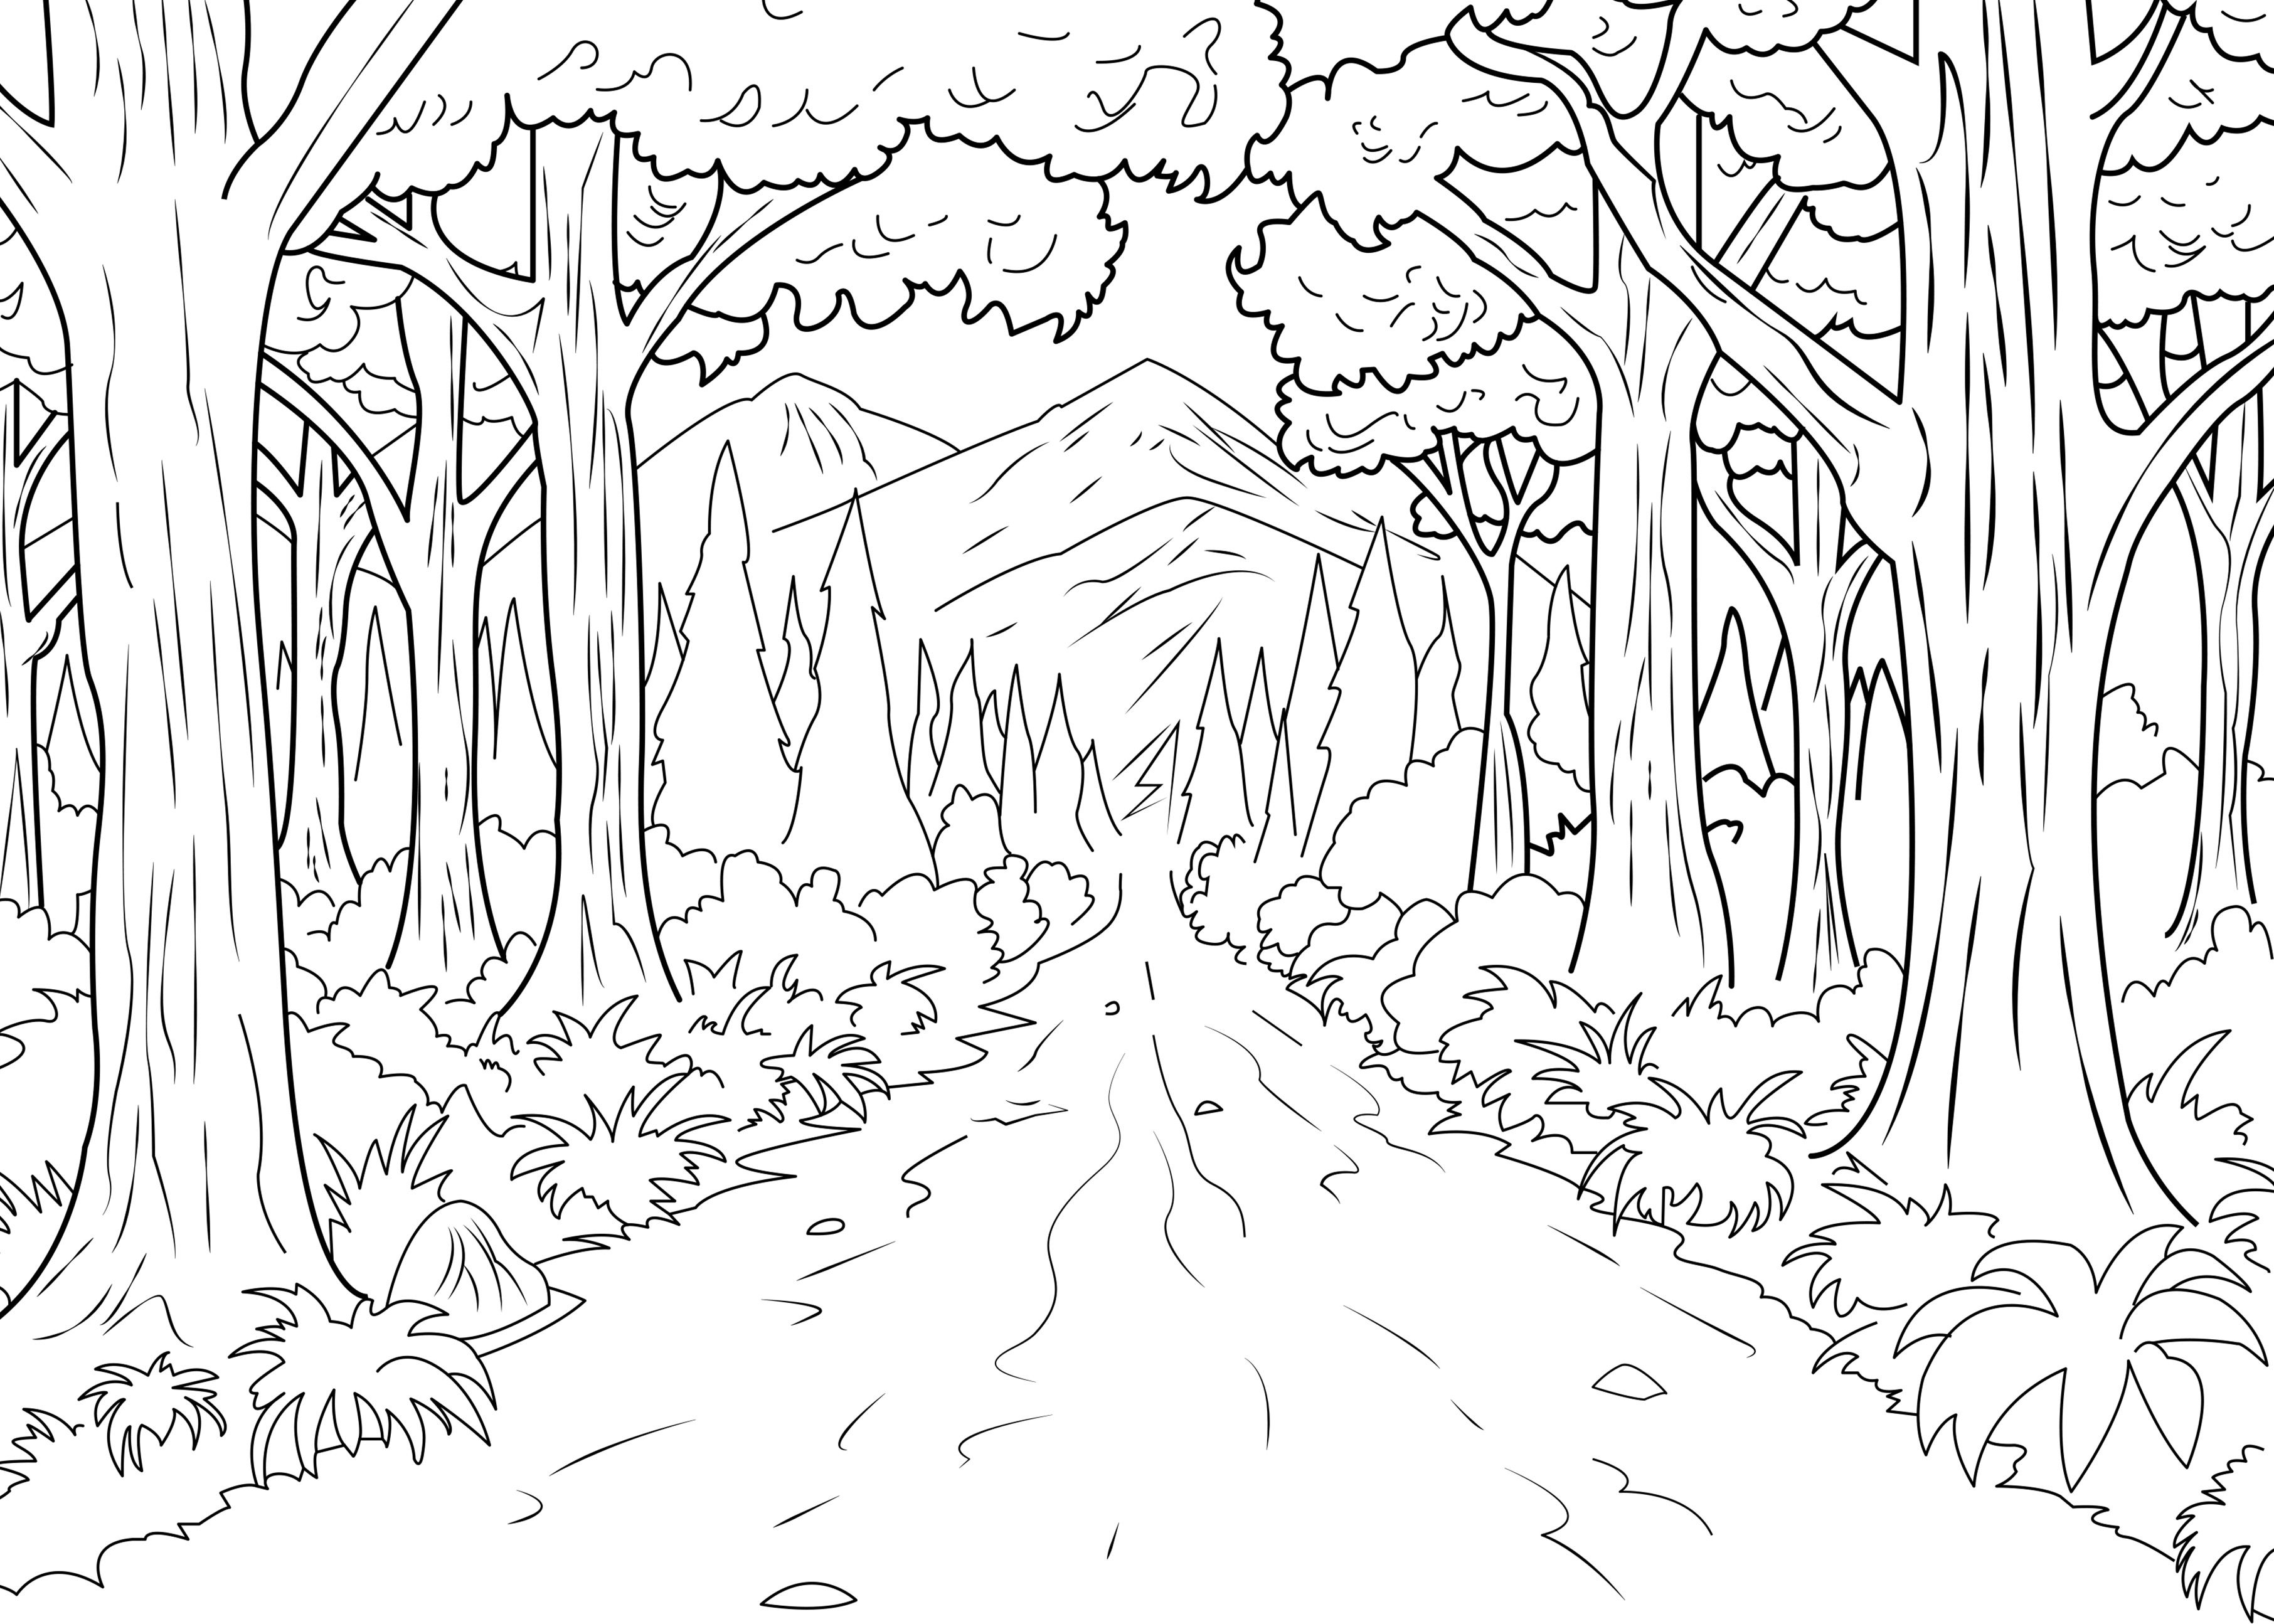 Jungle et for t coloriages difficiles pour adultes coloriage adulte foret - Dessin de foret ...